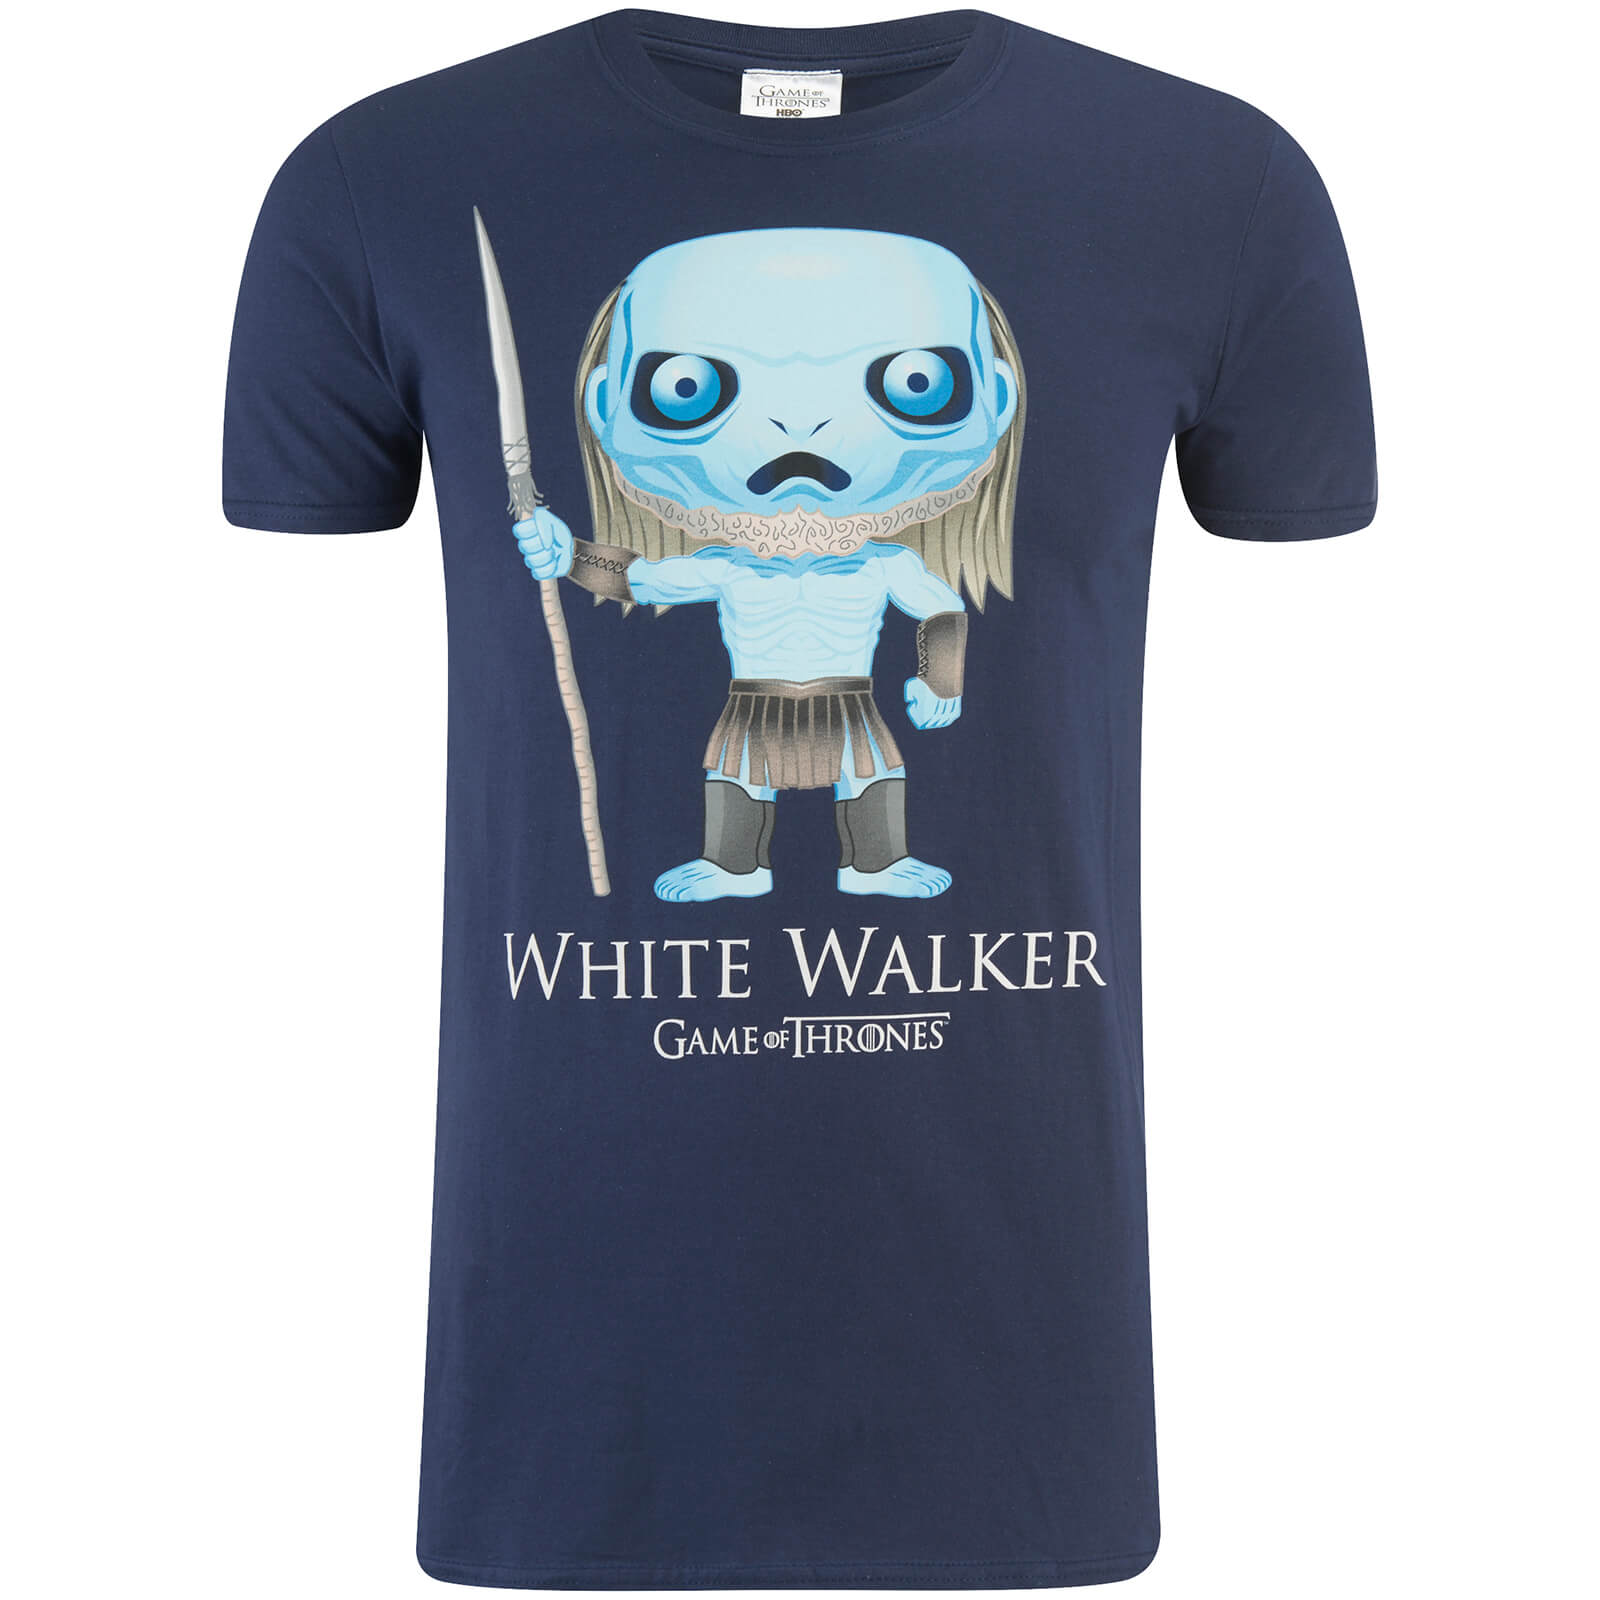 T-Shirt Homme Game of Thrones Walker Funko - Bleu Marine